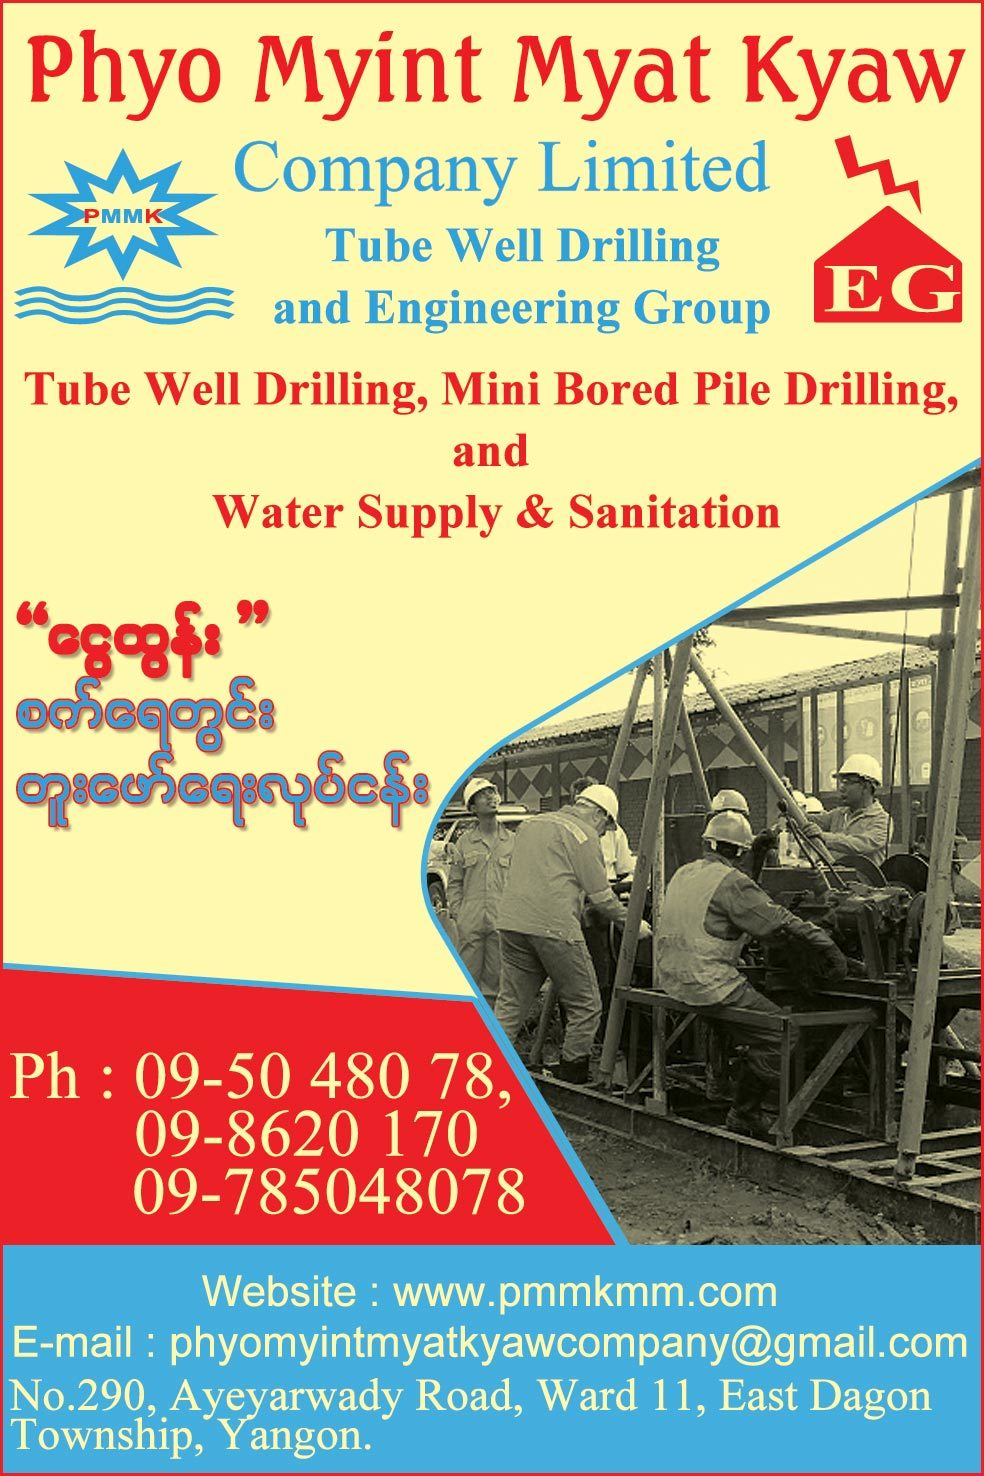 Phyo-Myint-Myat-Kyaw-Co-Ltd_Well-Drillers_2385.jpg